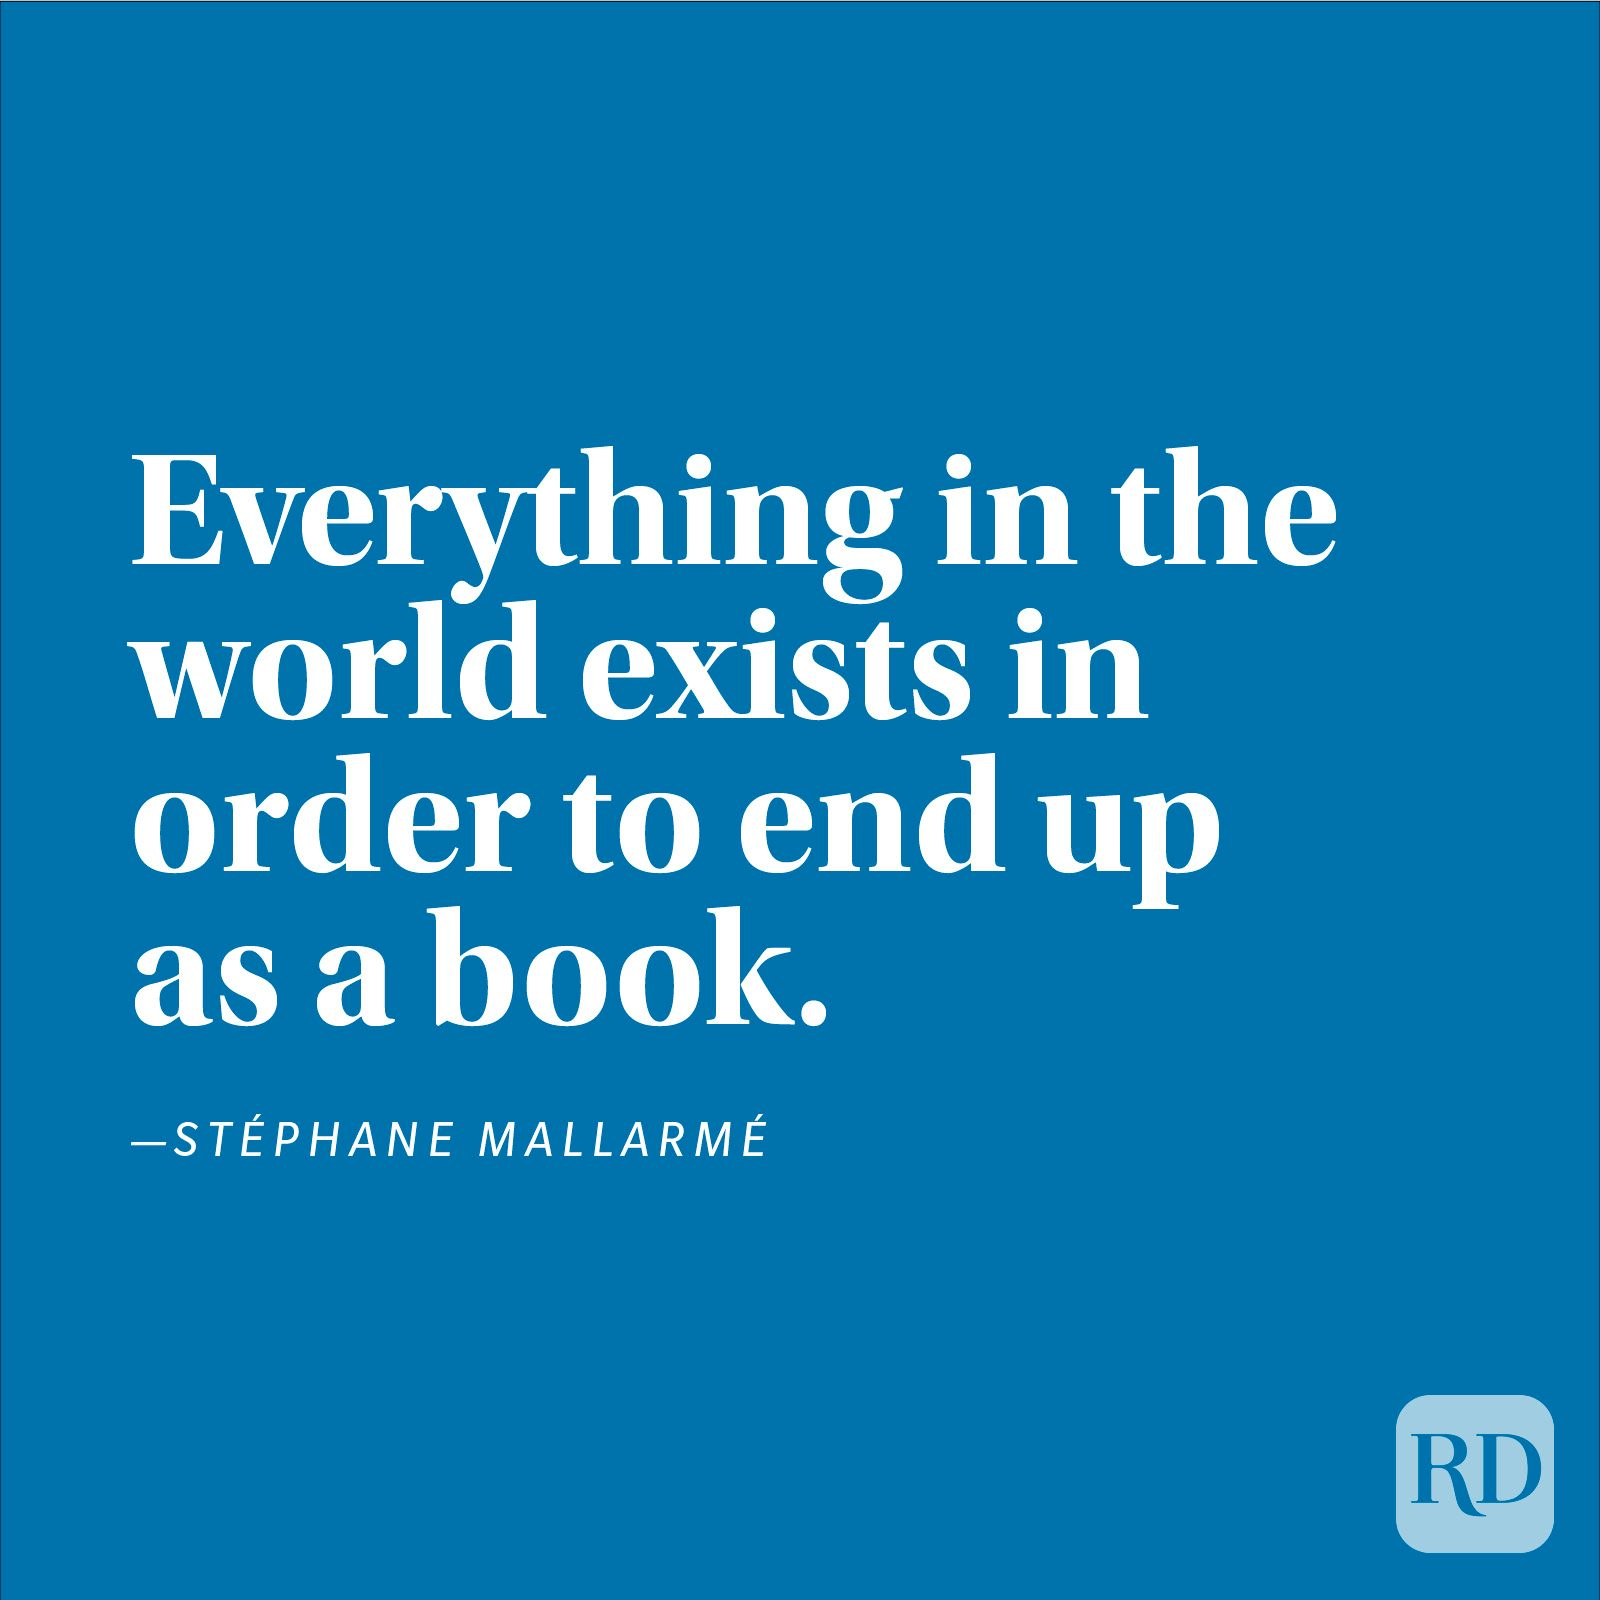 """Everything in the world exists in order to end up as a book."" —Stéphane Mallarmé"